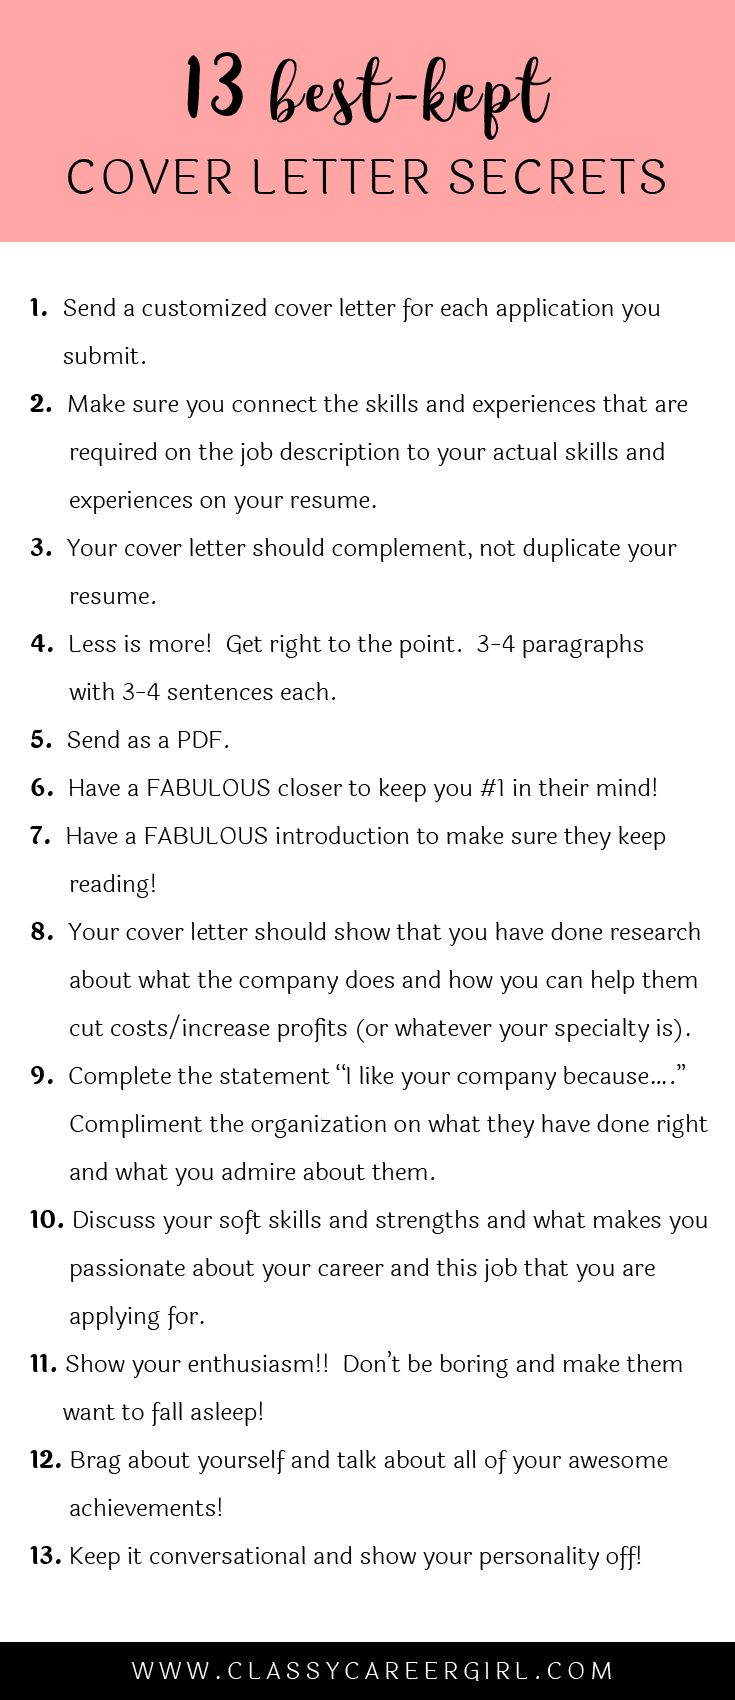 best ideas about cover letters cover letter tips the 13 best kept cover letter secrets